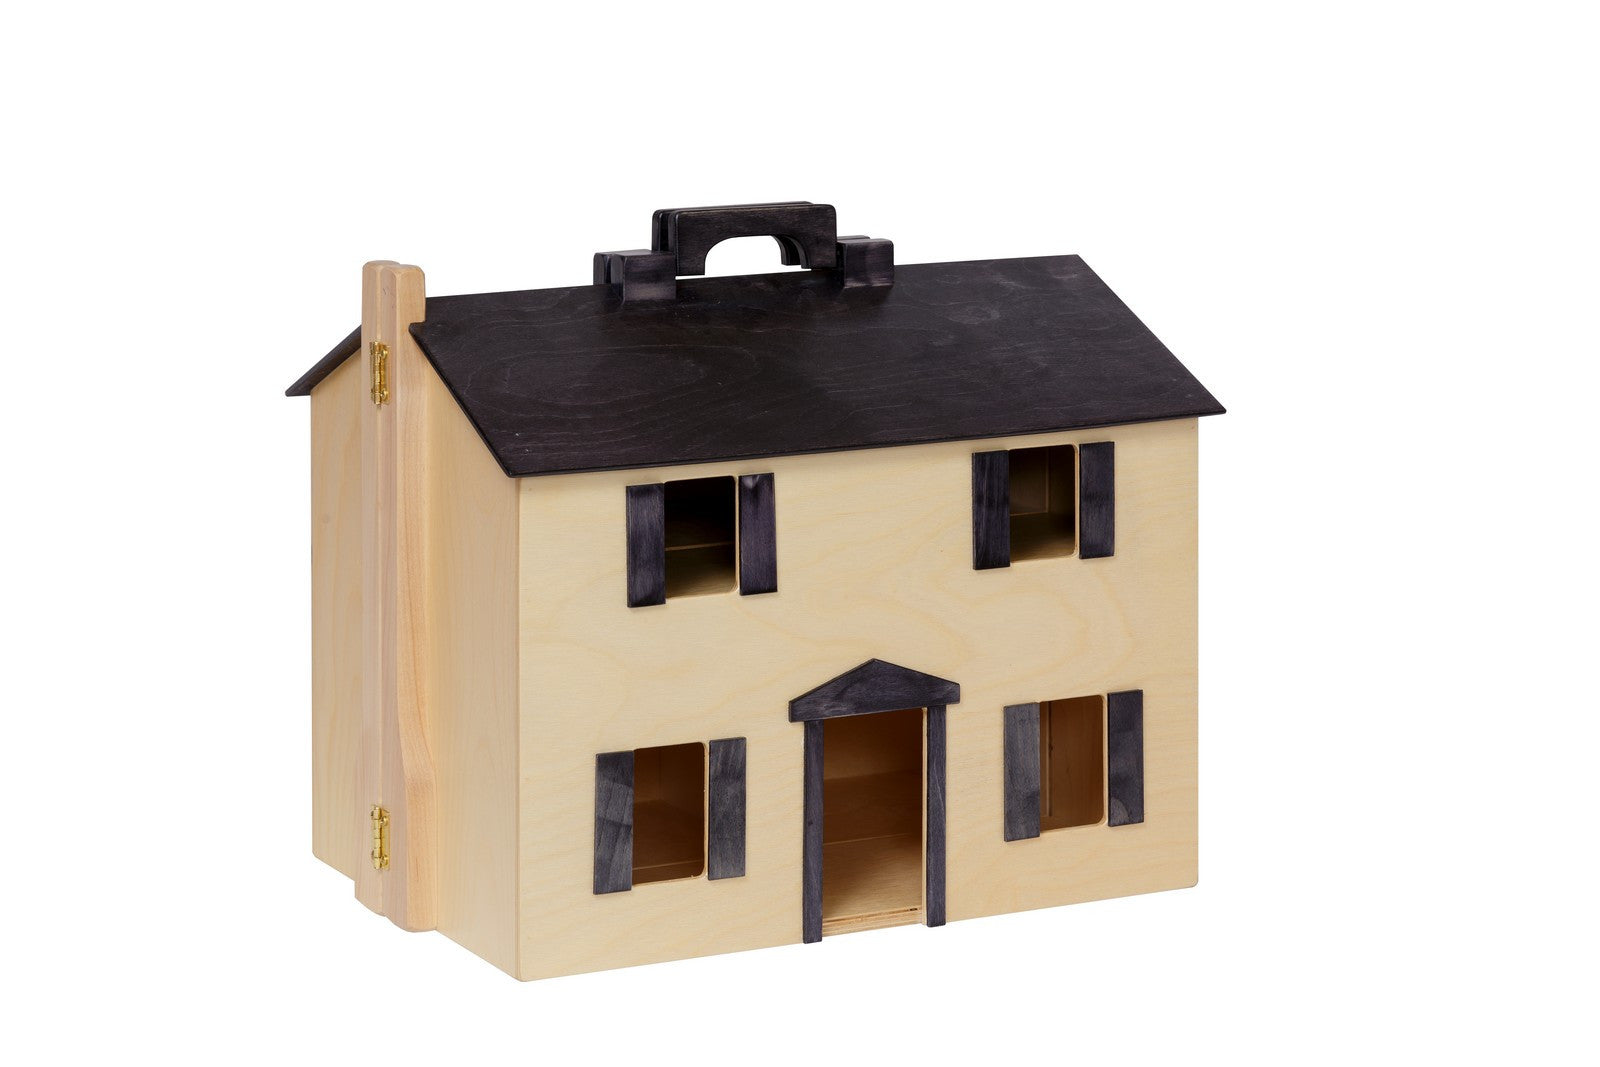 Amish-Made Wooden Doll House Toy